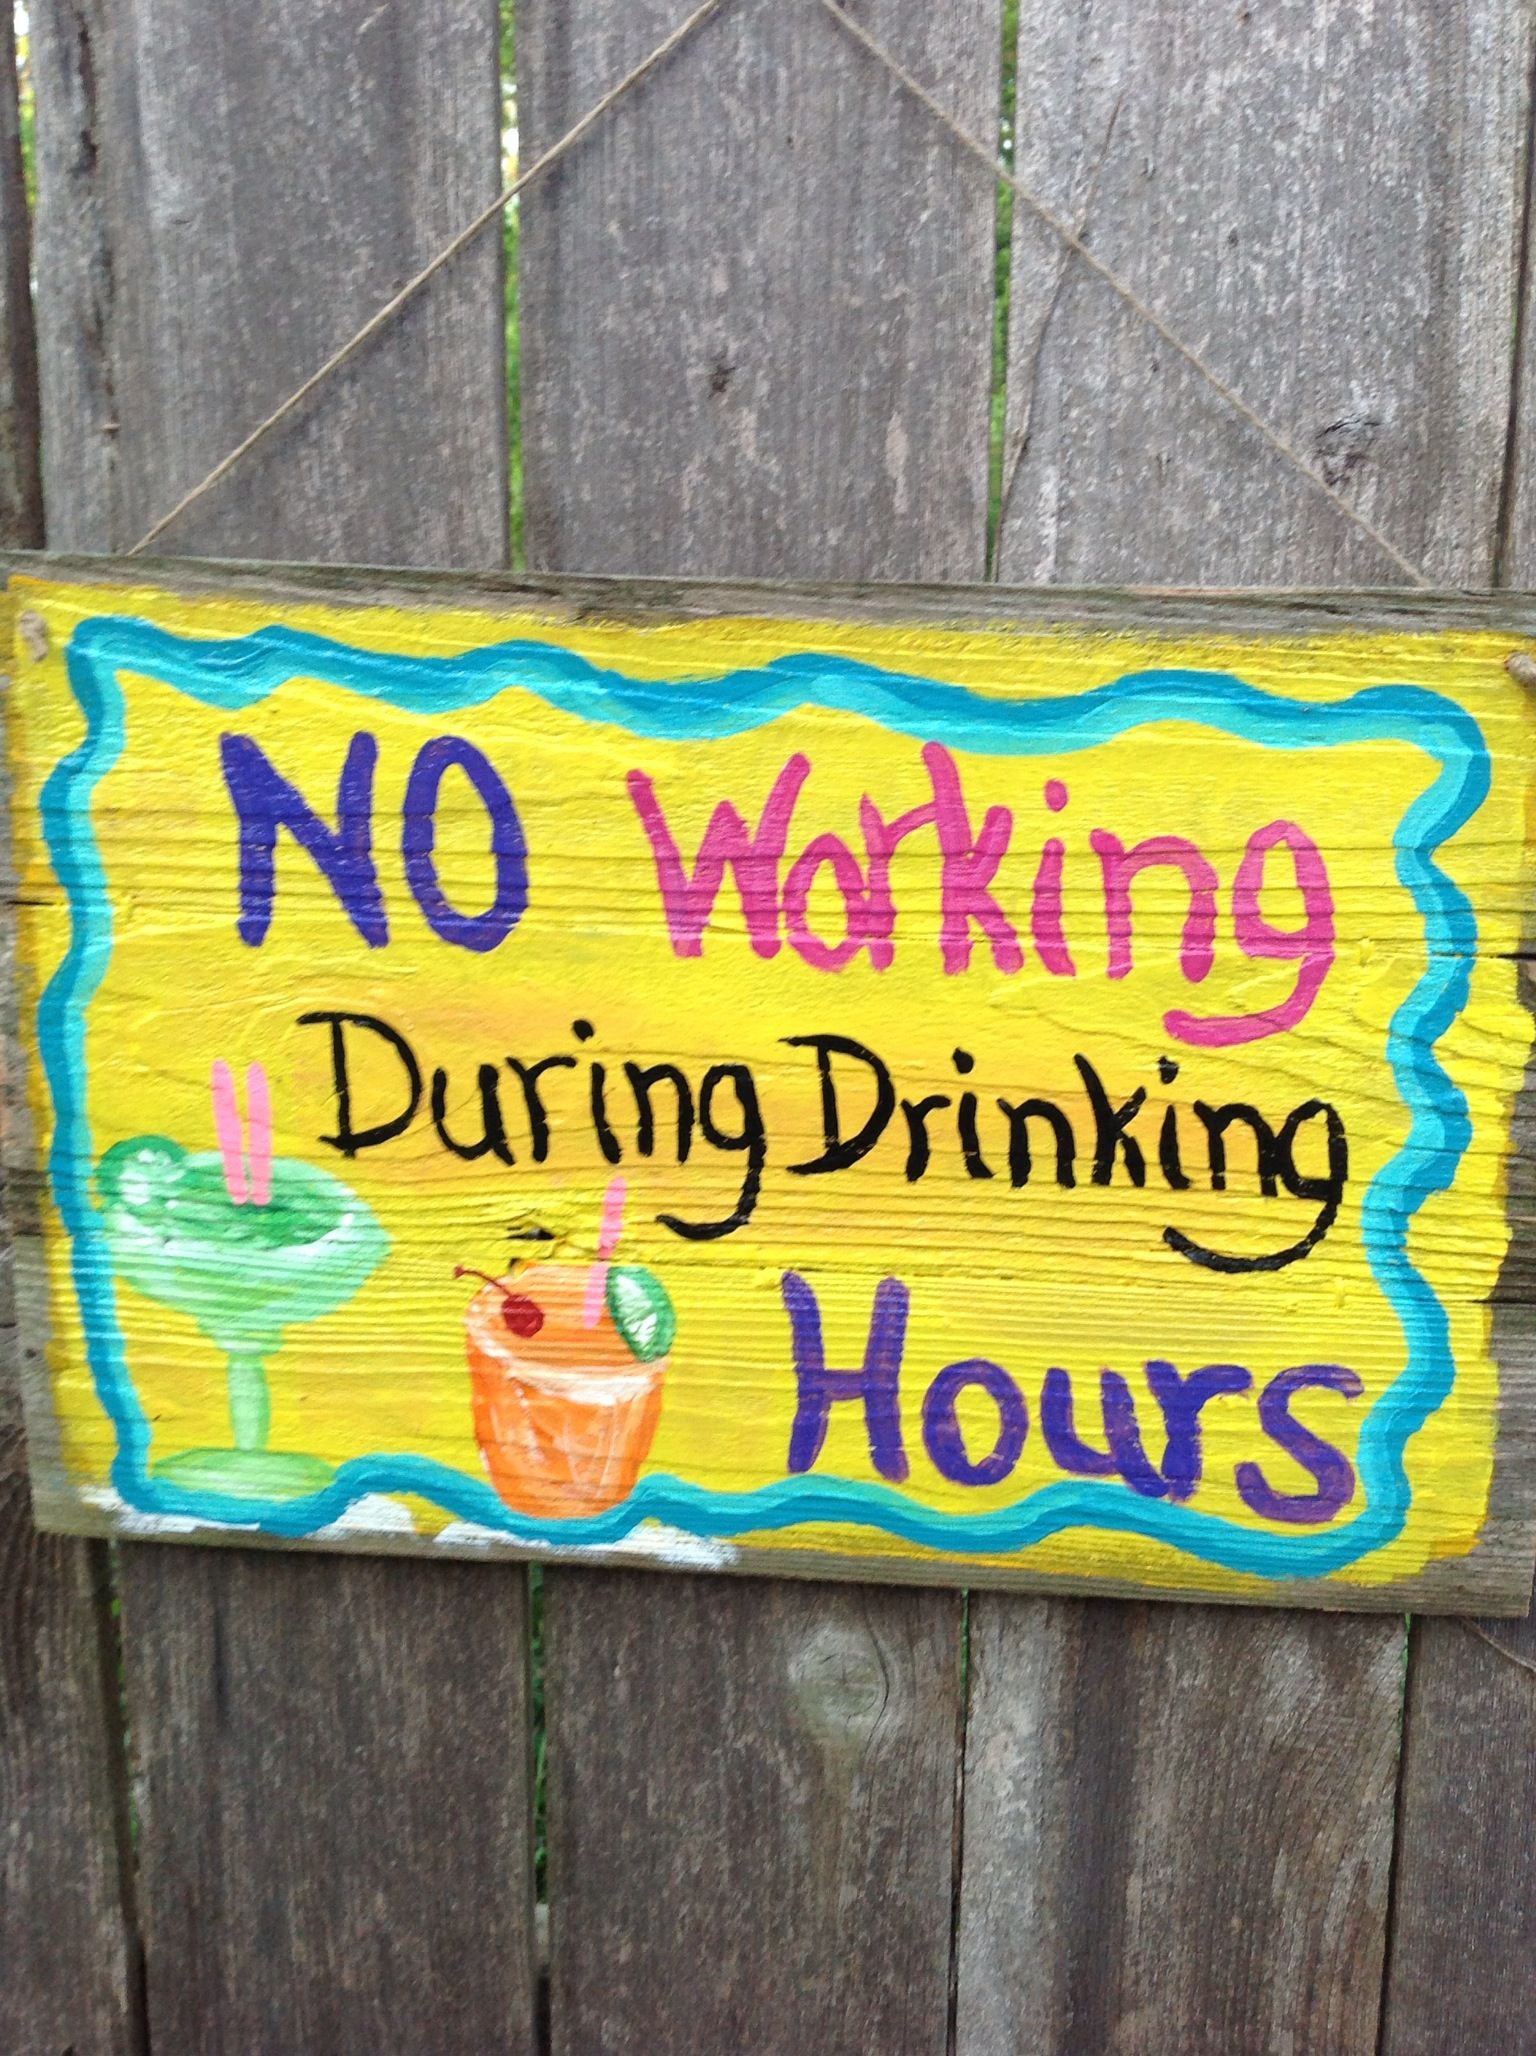 Bar Signs And Decorations Tiki Bar Signs  Patio  Pinterest  Tiki Bar Signs Tiki Bars And Bar